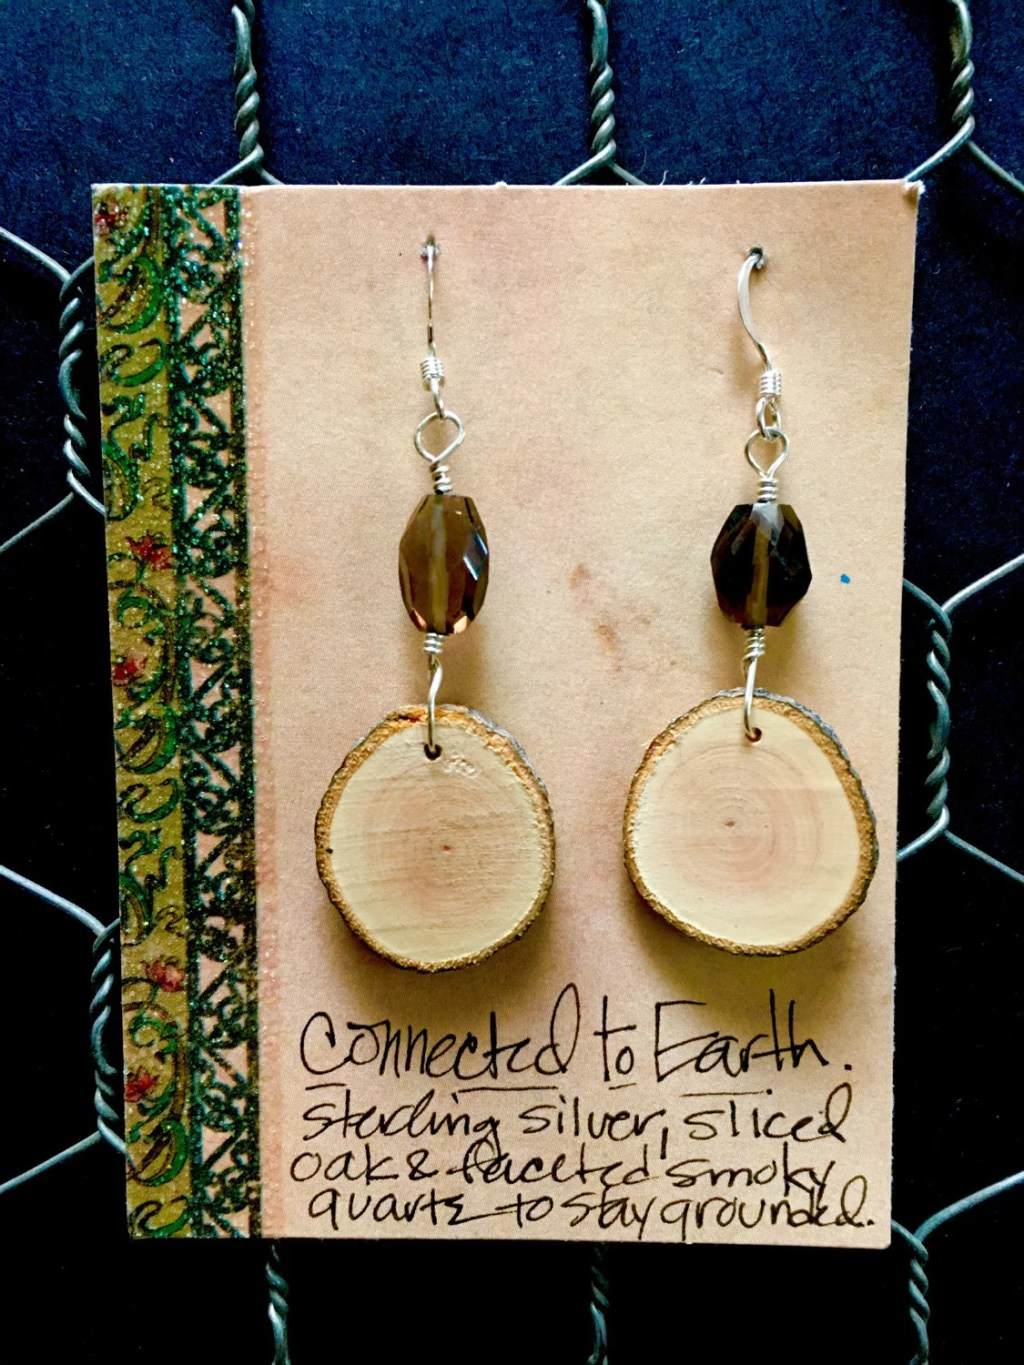 Conected to Earth earrings